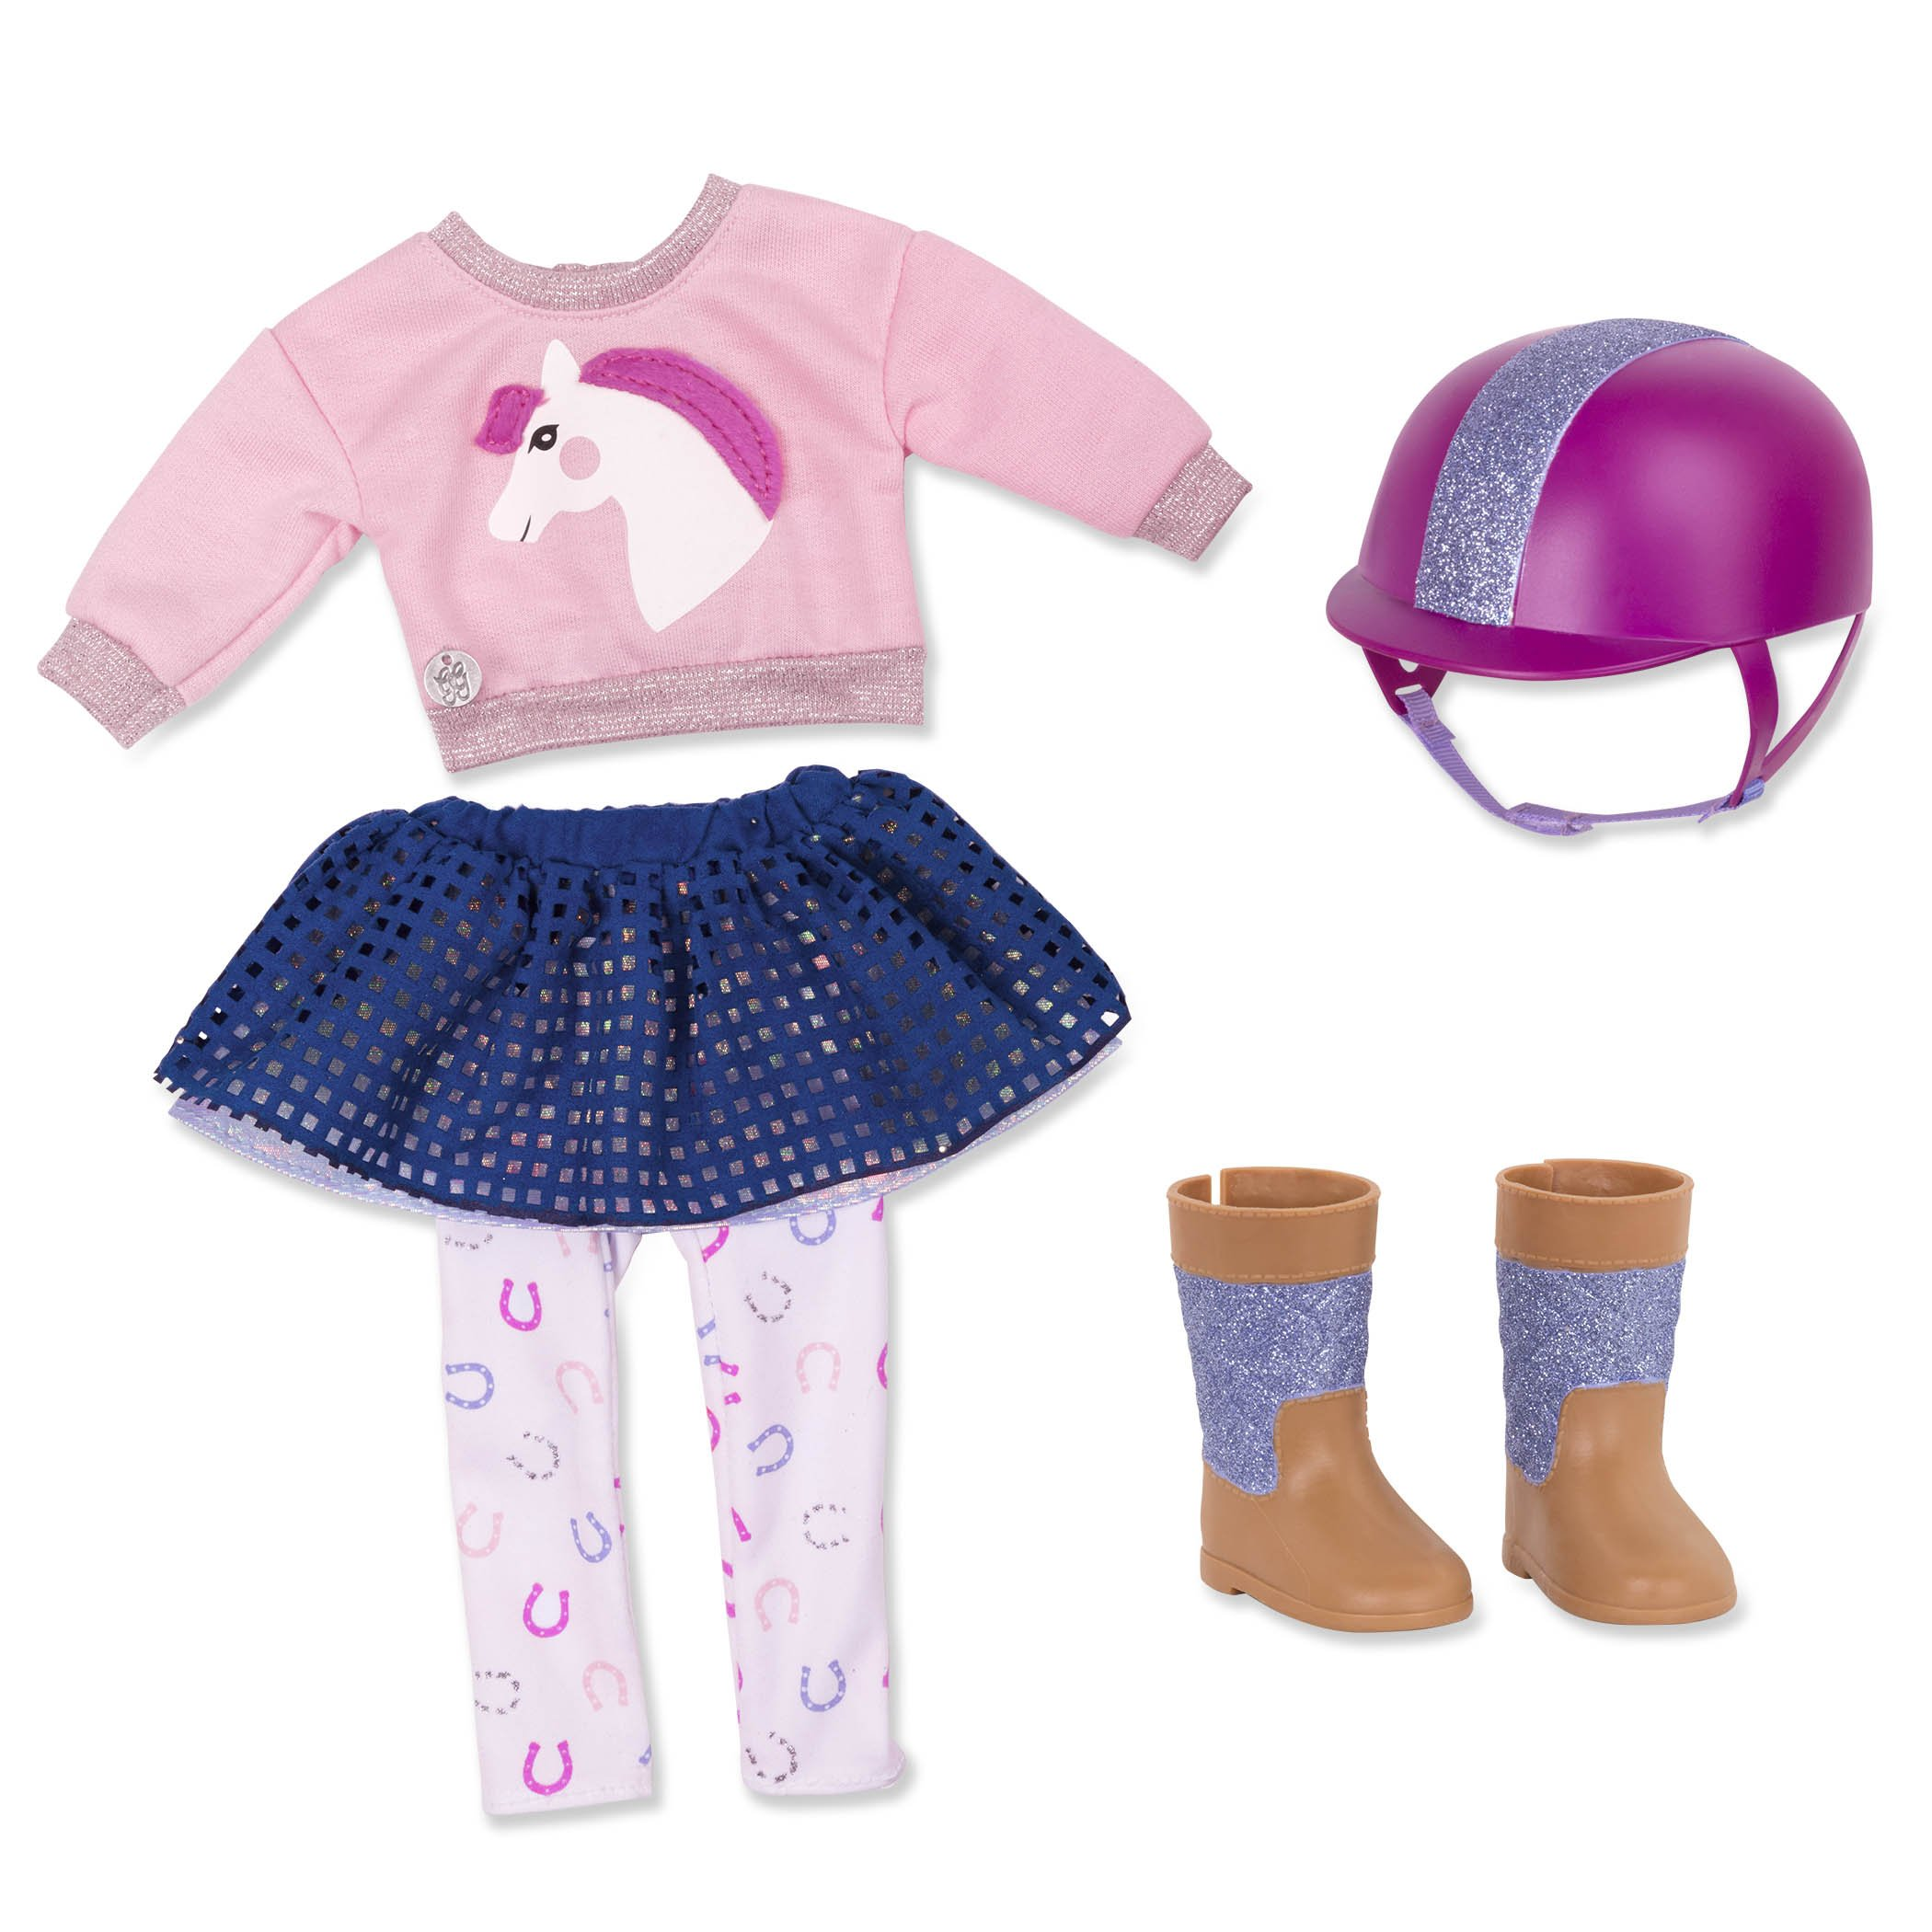 "Glitter Girls by Battat - Gallop & Glow! Outfit -14"" Doll Clothes - Toys, Clothes & Accessories For Girls 3-Year-Old & Up"